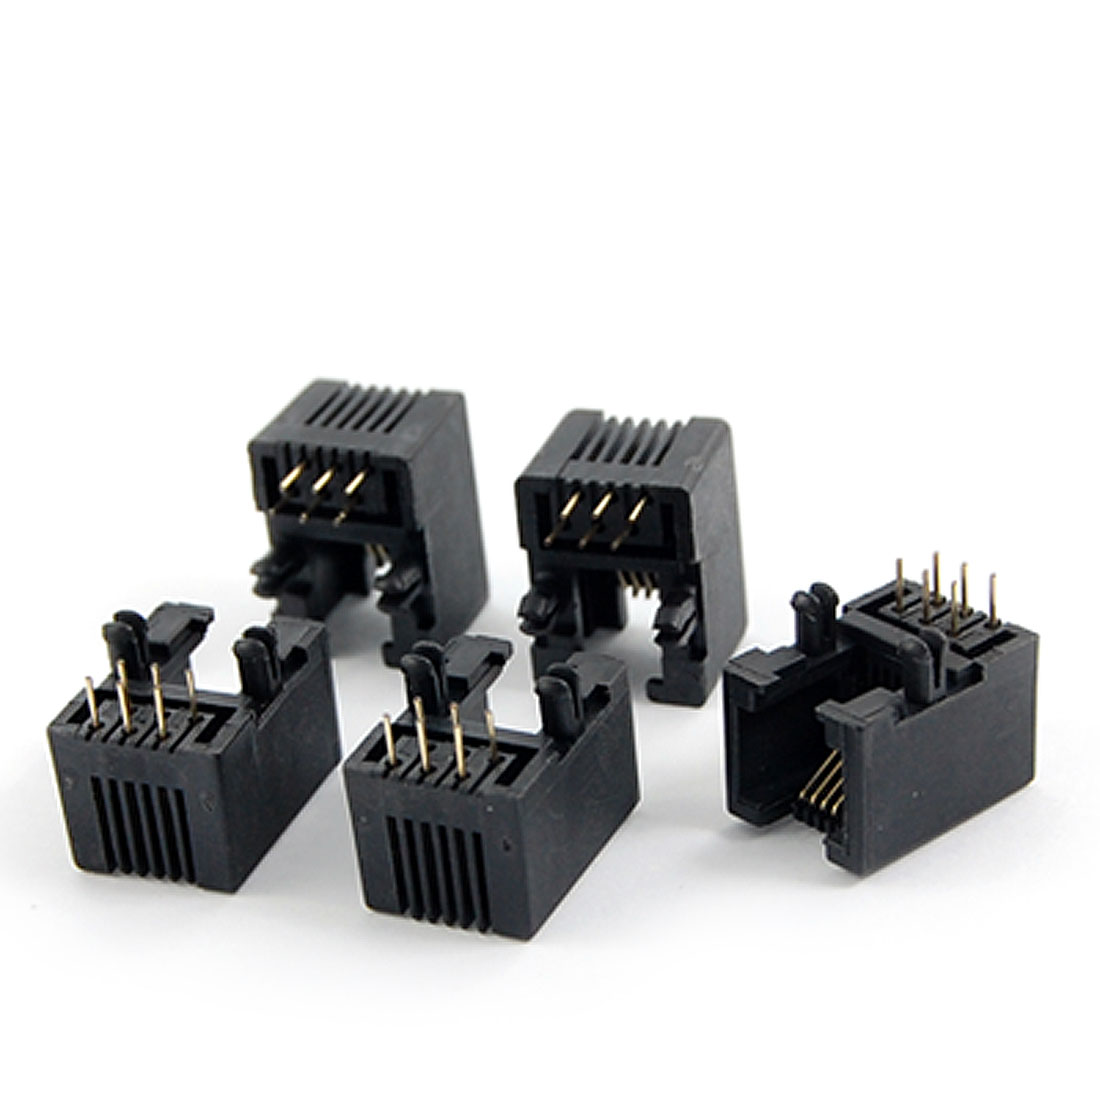 5 Pcs 6P6C 6 Pin RJ11 Modular Connector Telephone PCB Jack Connectors